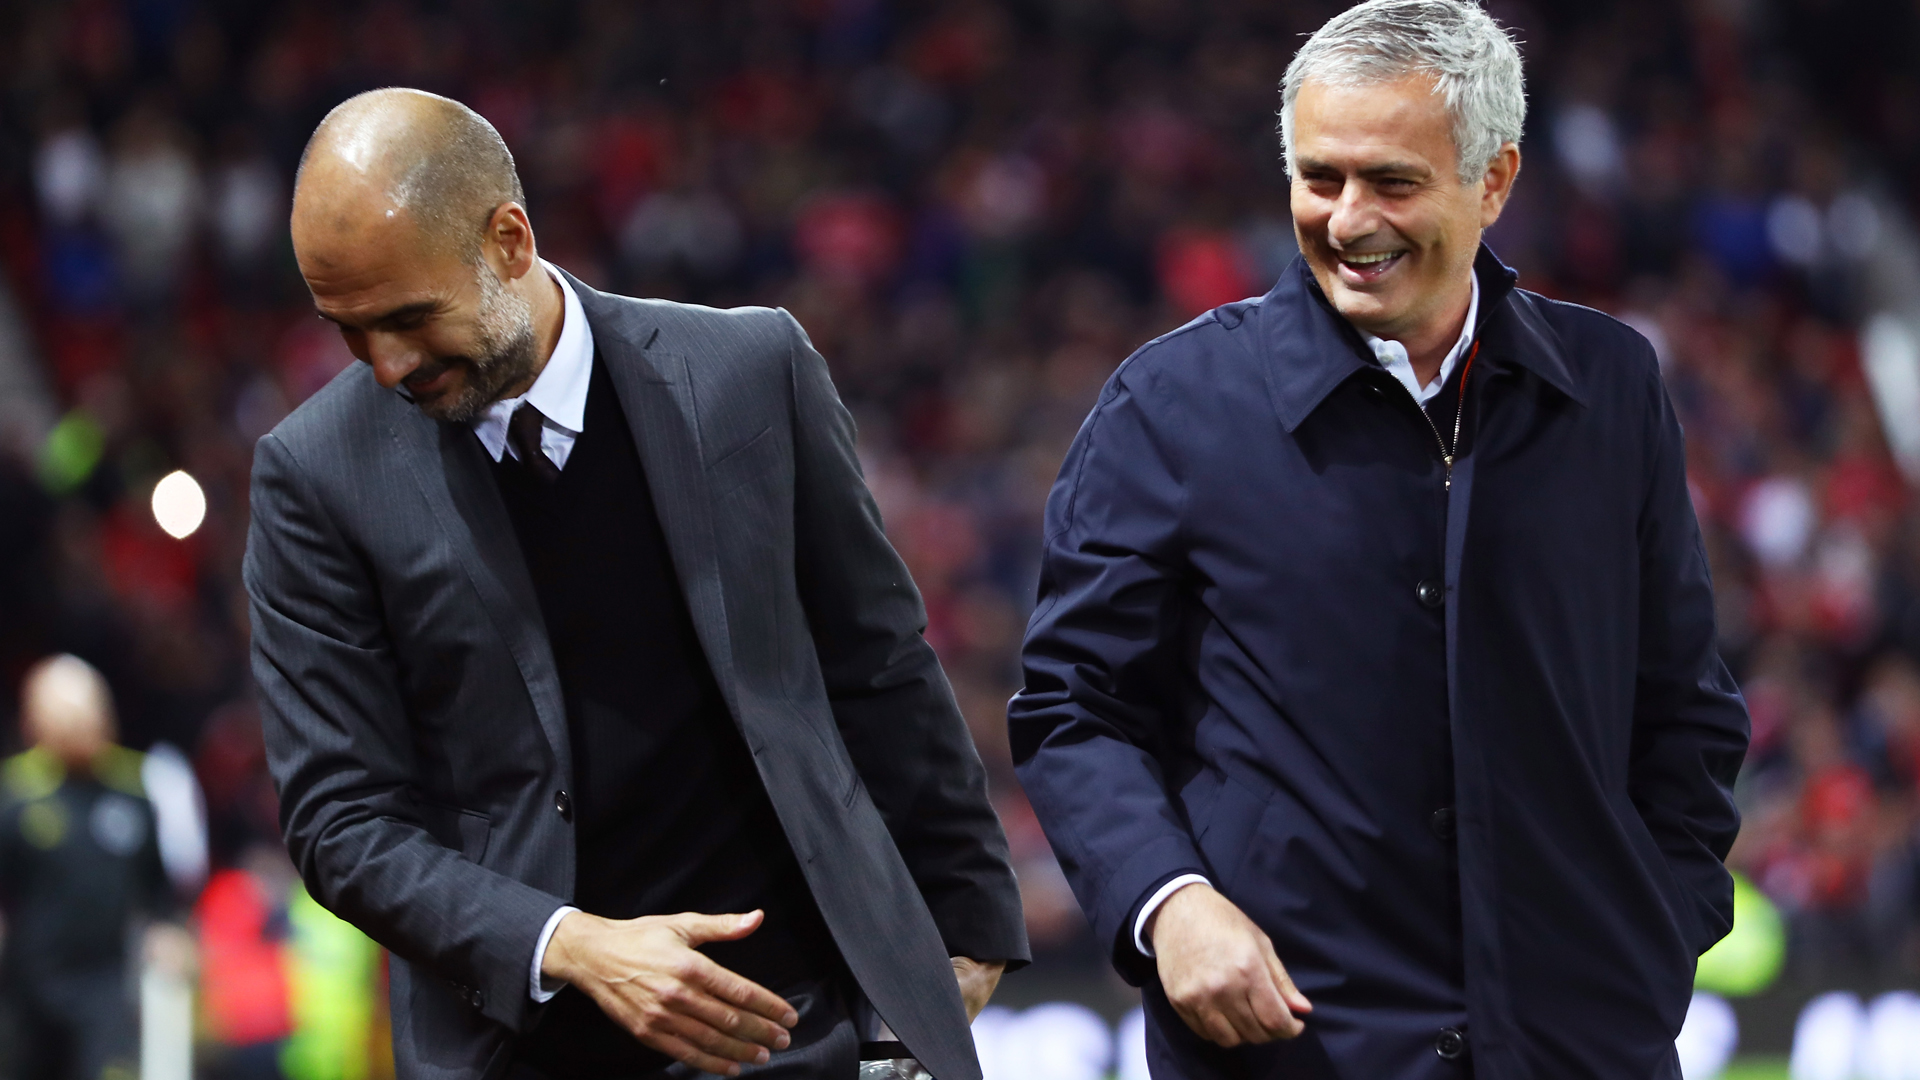 Manchester City's victory over Everton saw manager Pep Guardiola bring up a milestone triumph, but Jose Mourinho did it quicker.